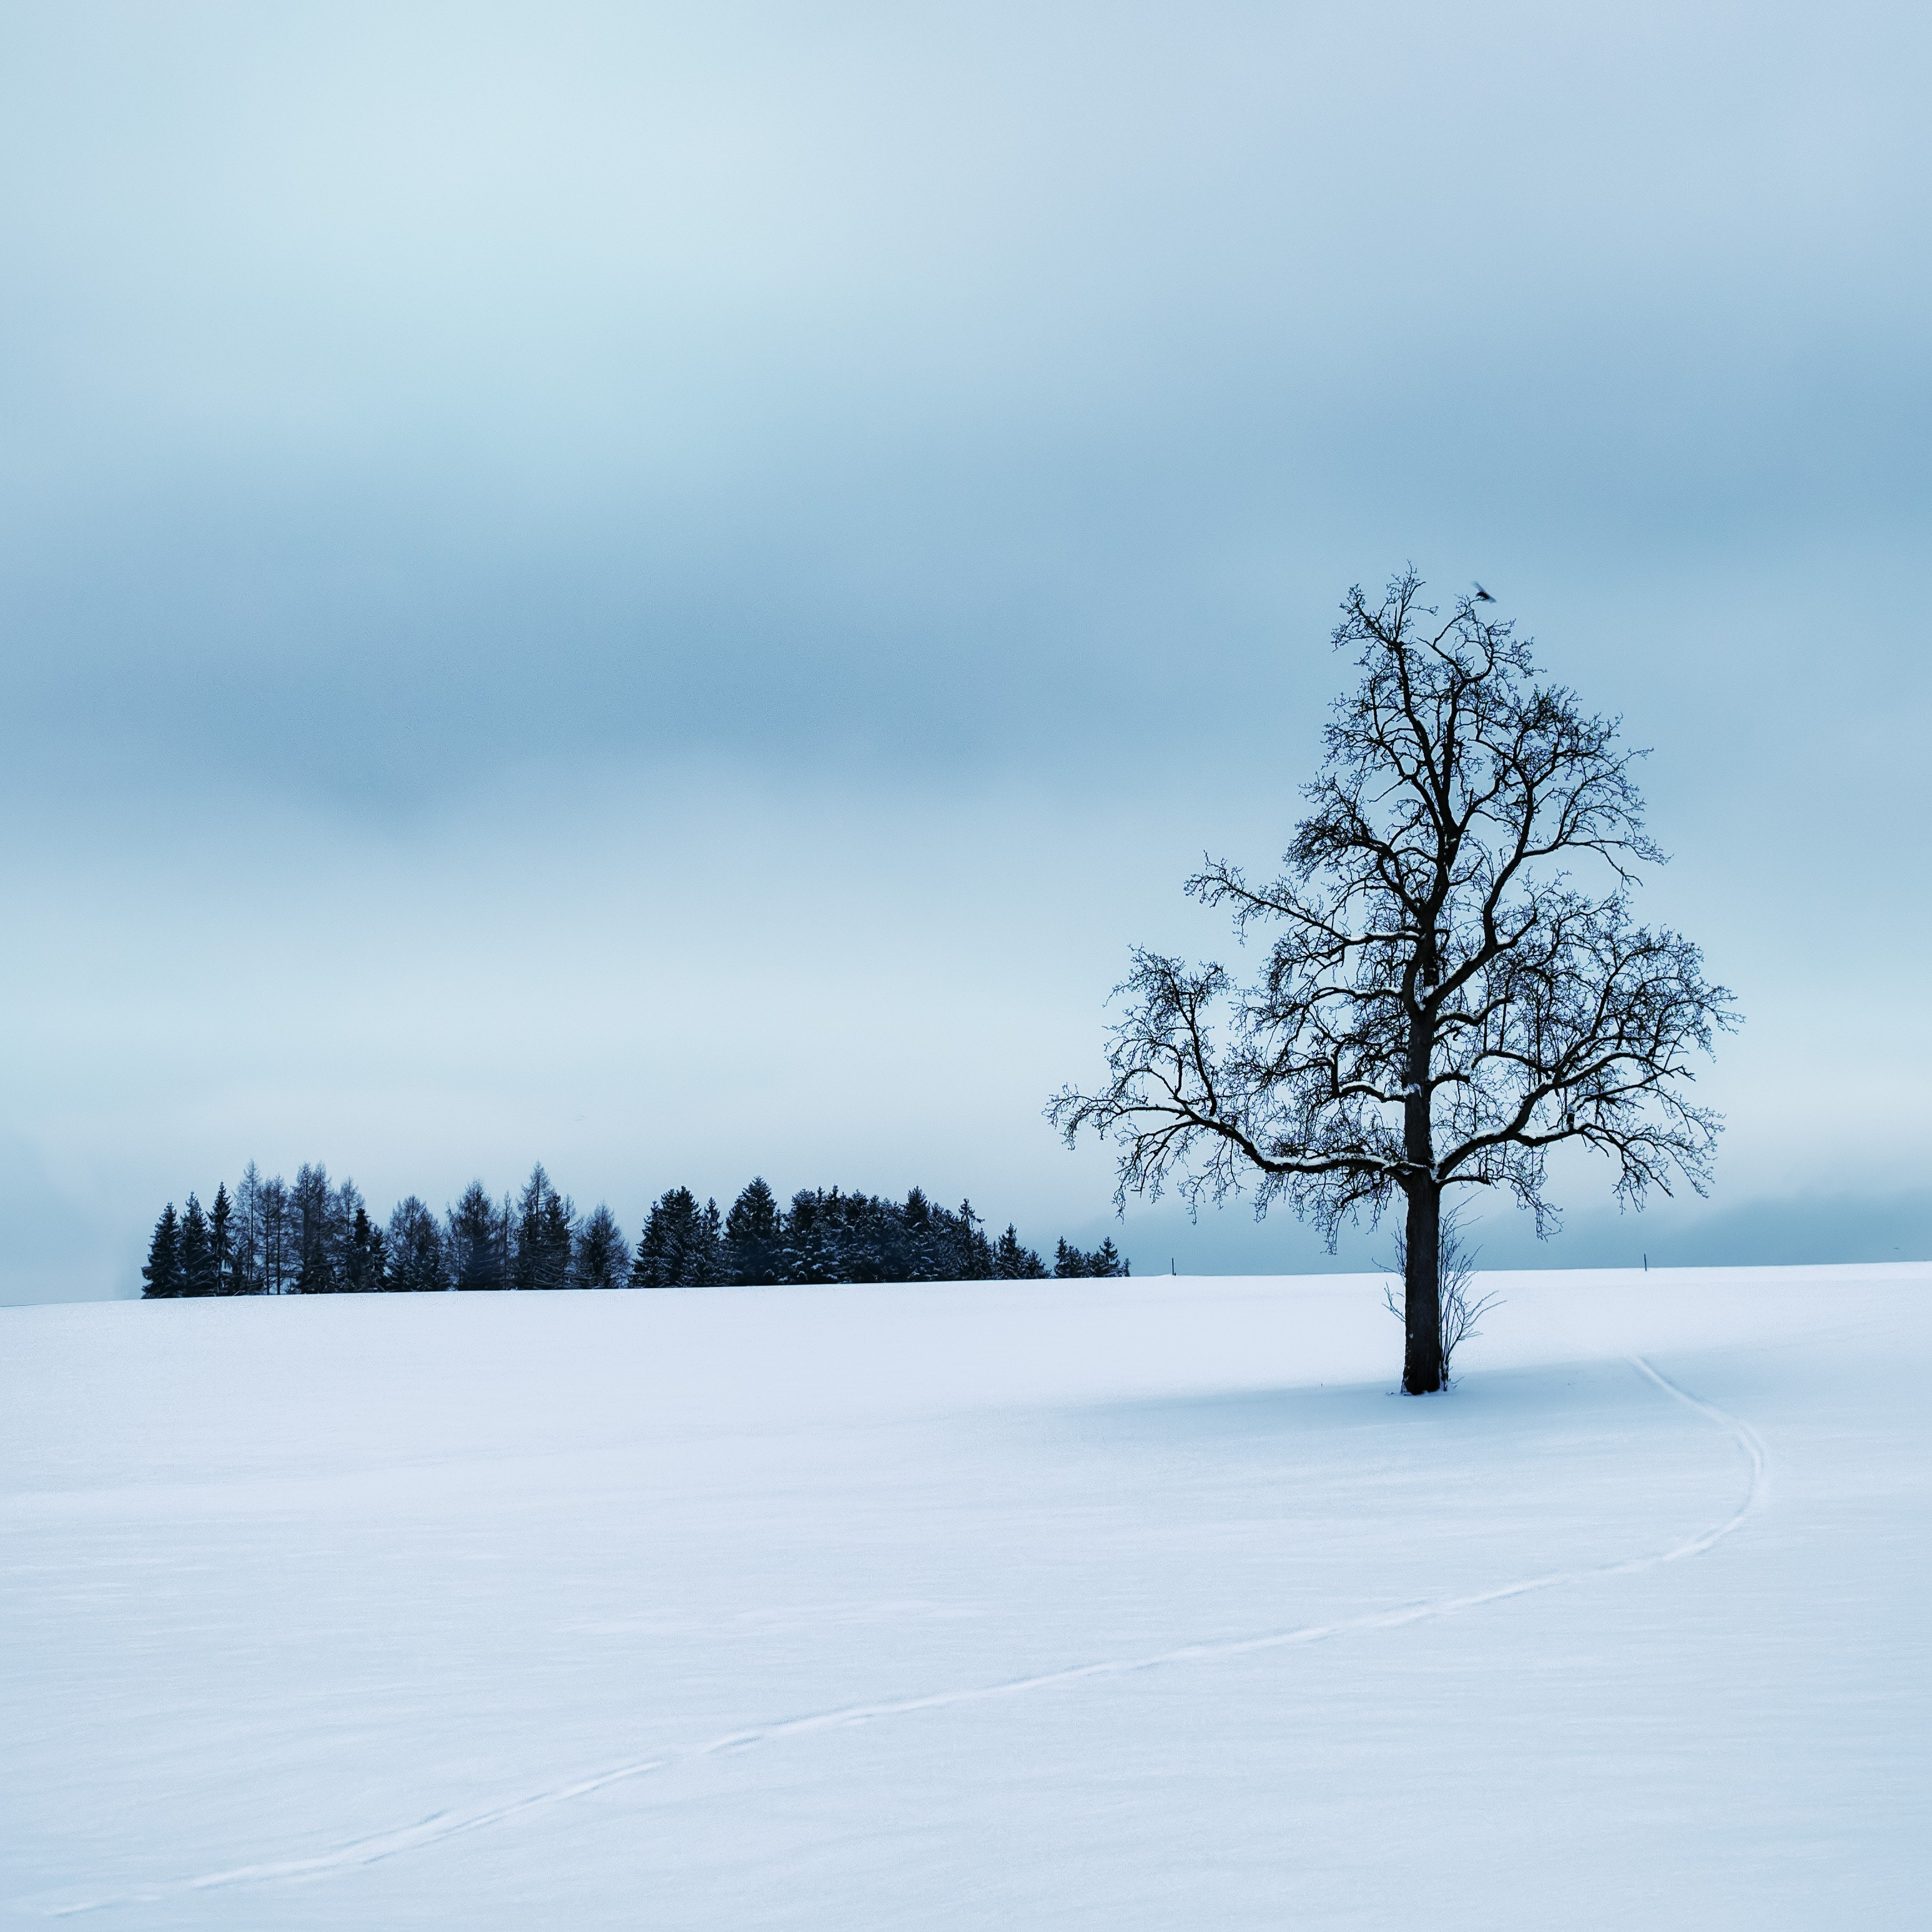 Tree surrounded by snow photo